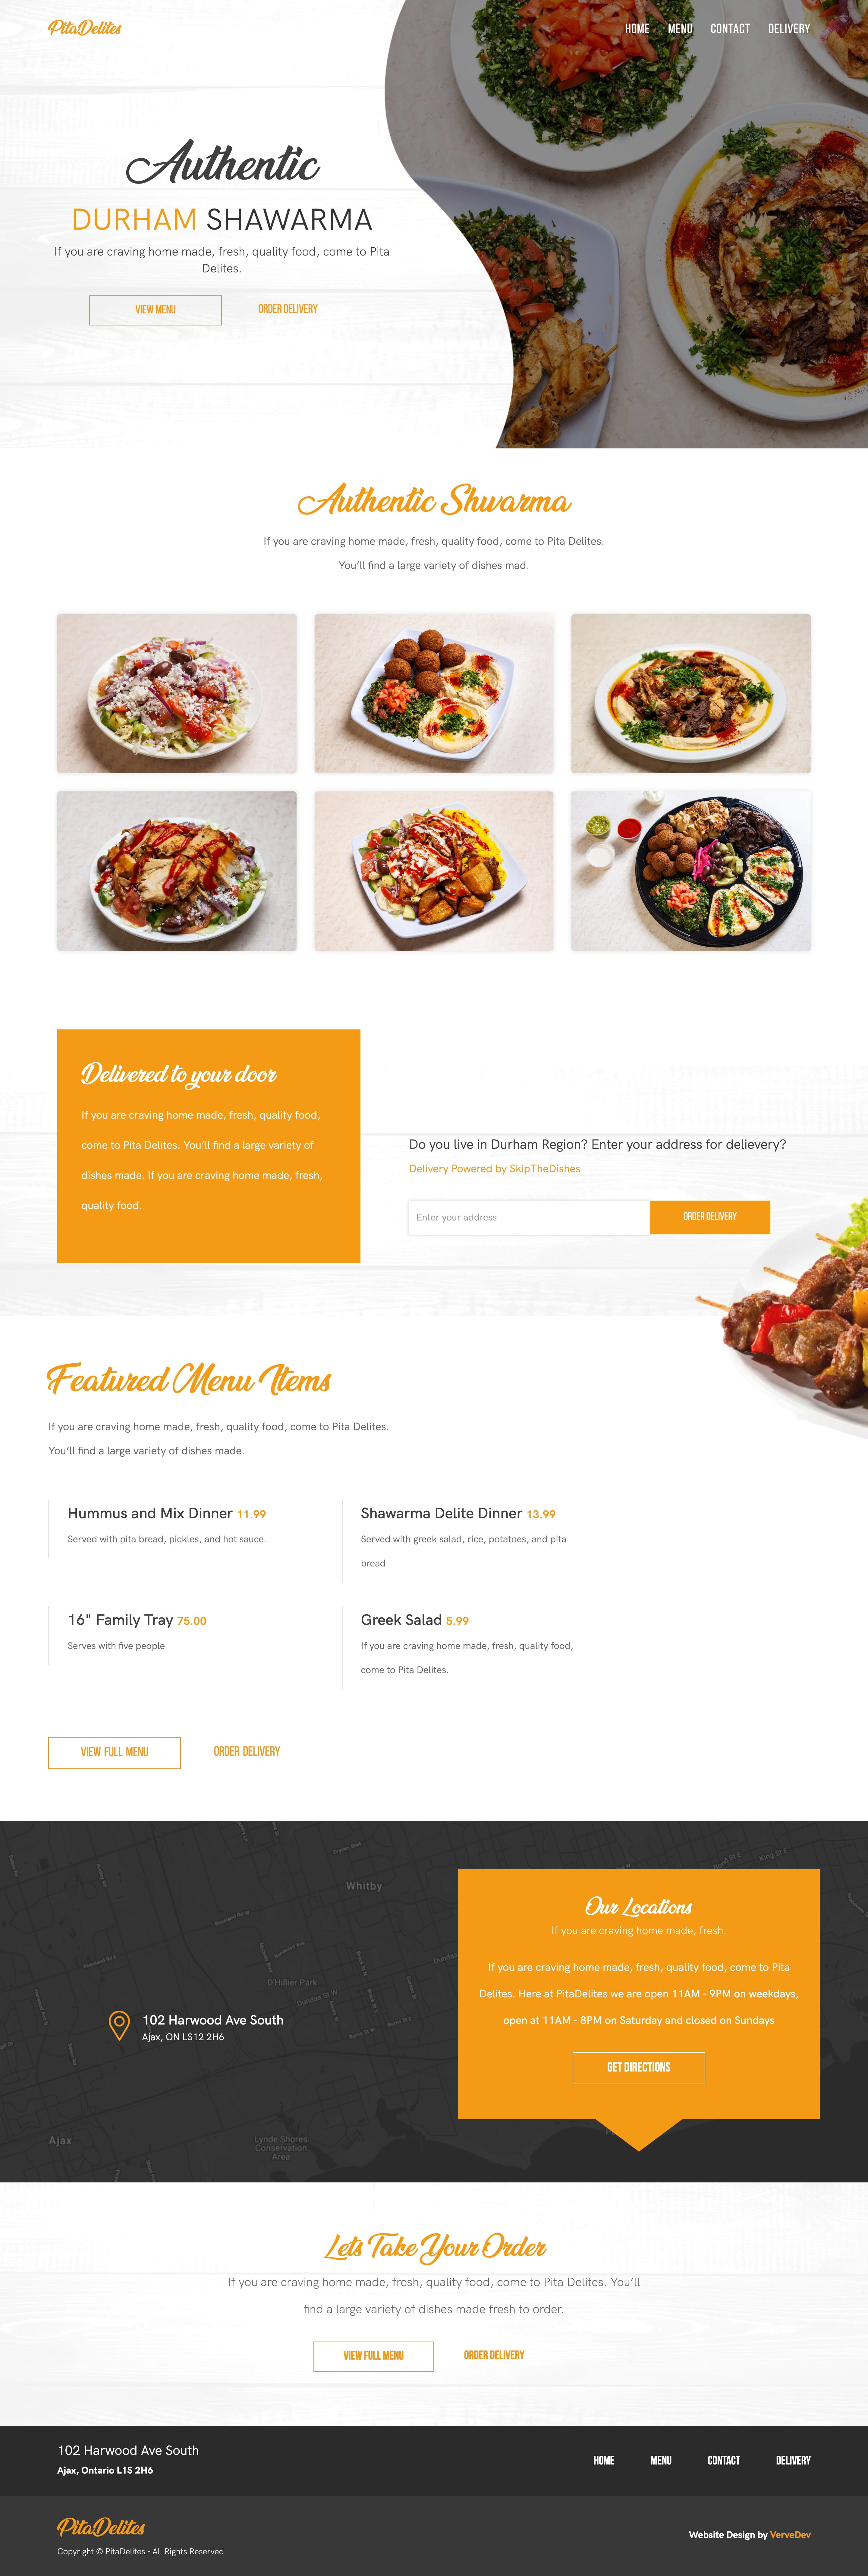 kingston-website-design-portfolio-1